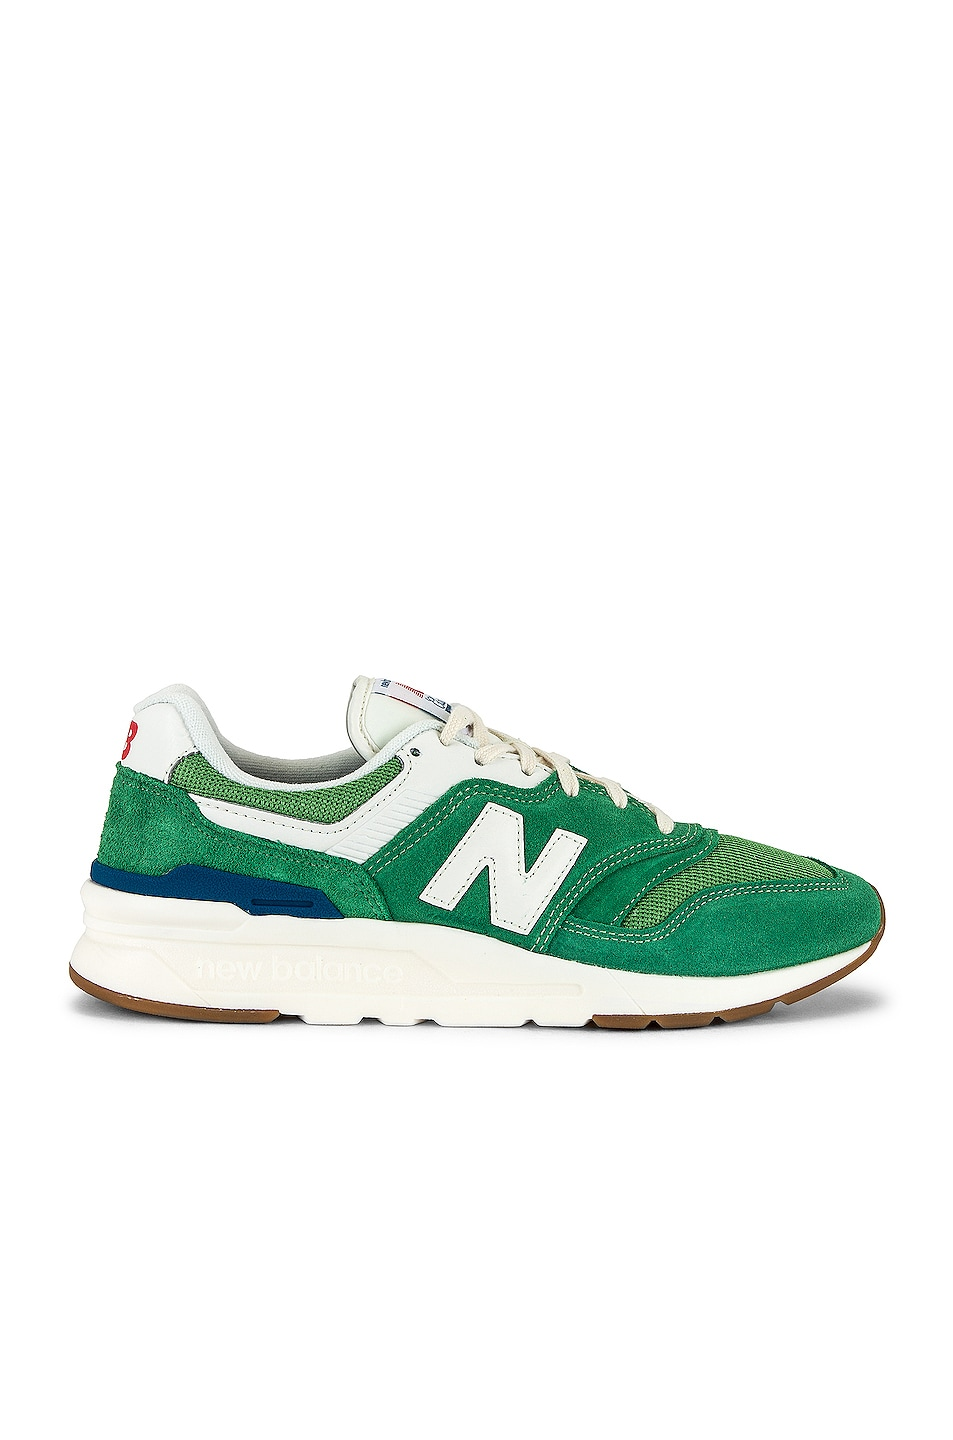 Image 1 of New Balance 997H in Varsity Green & Light Rogue Wave